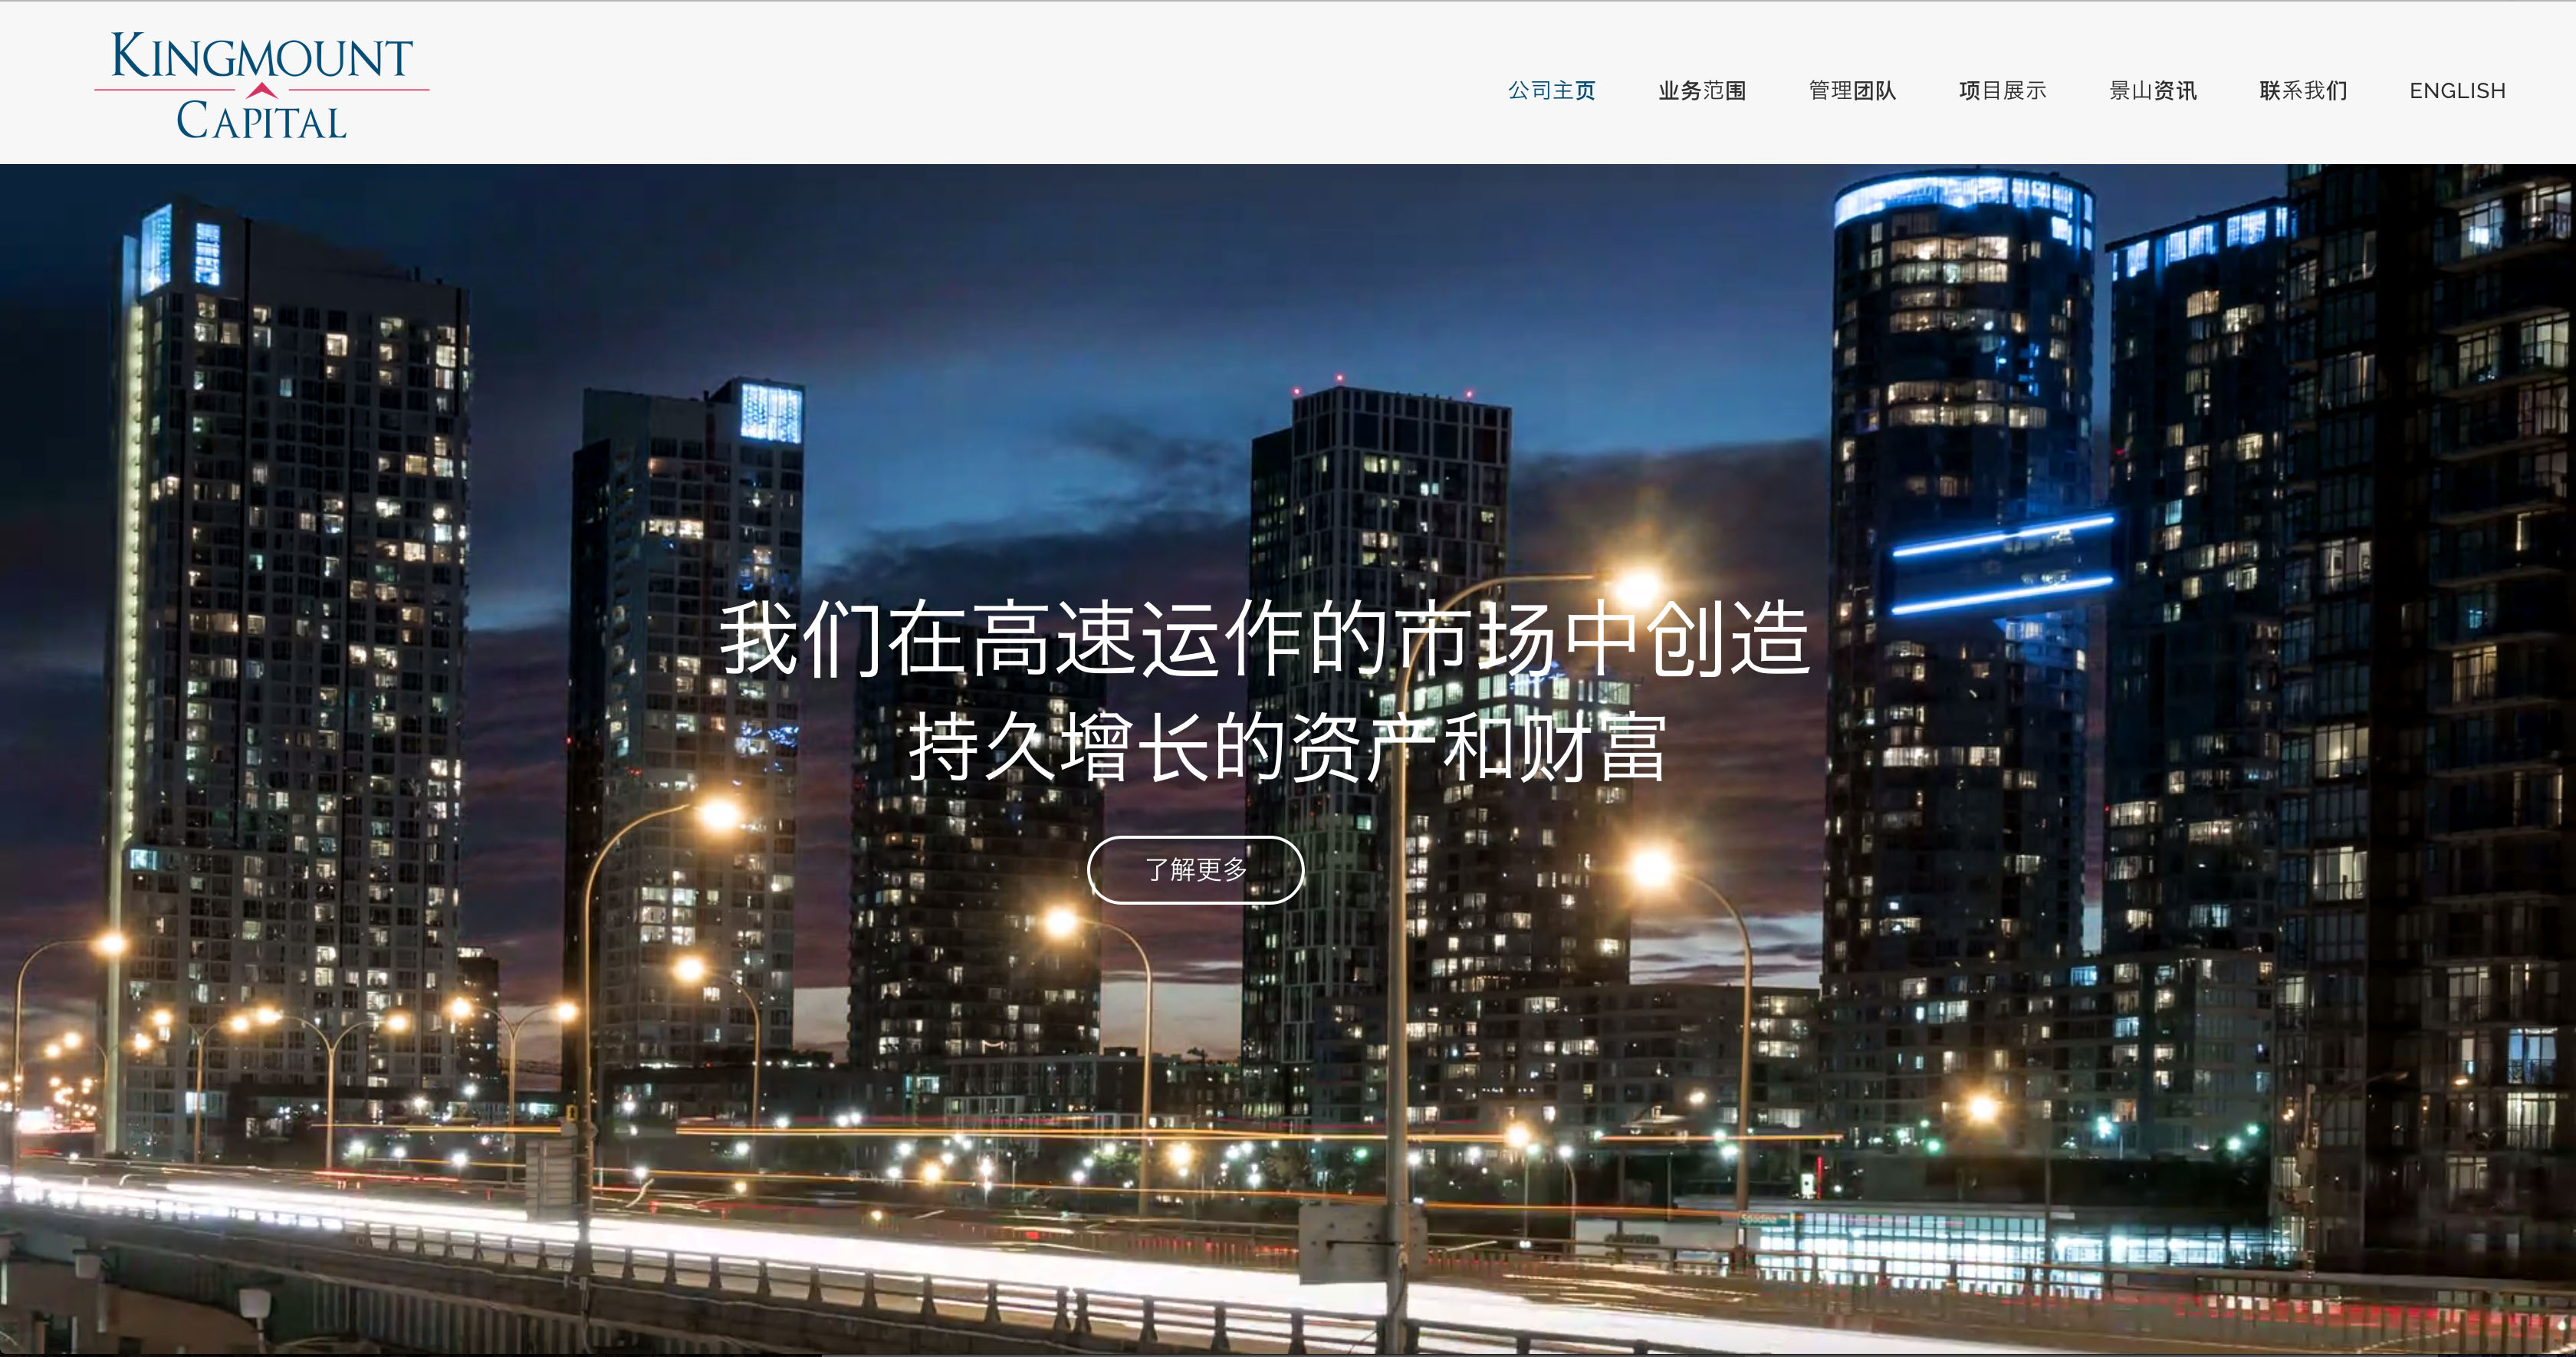 Chinese - Kingmount Capital - Hilborn Digital Website Design